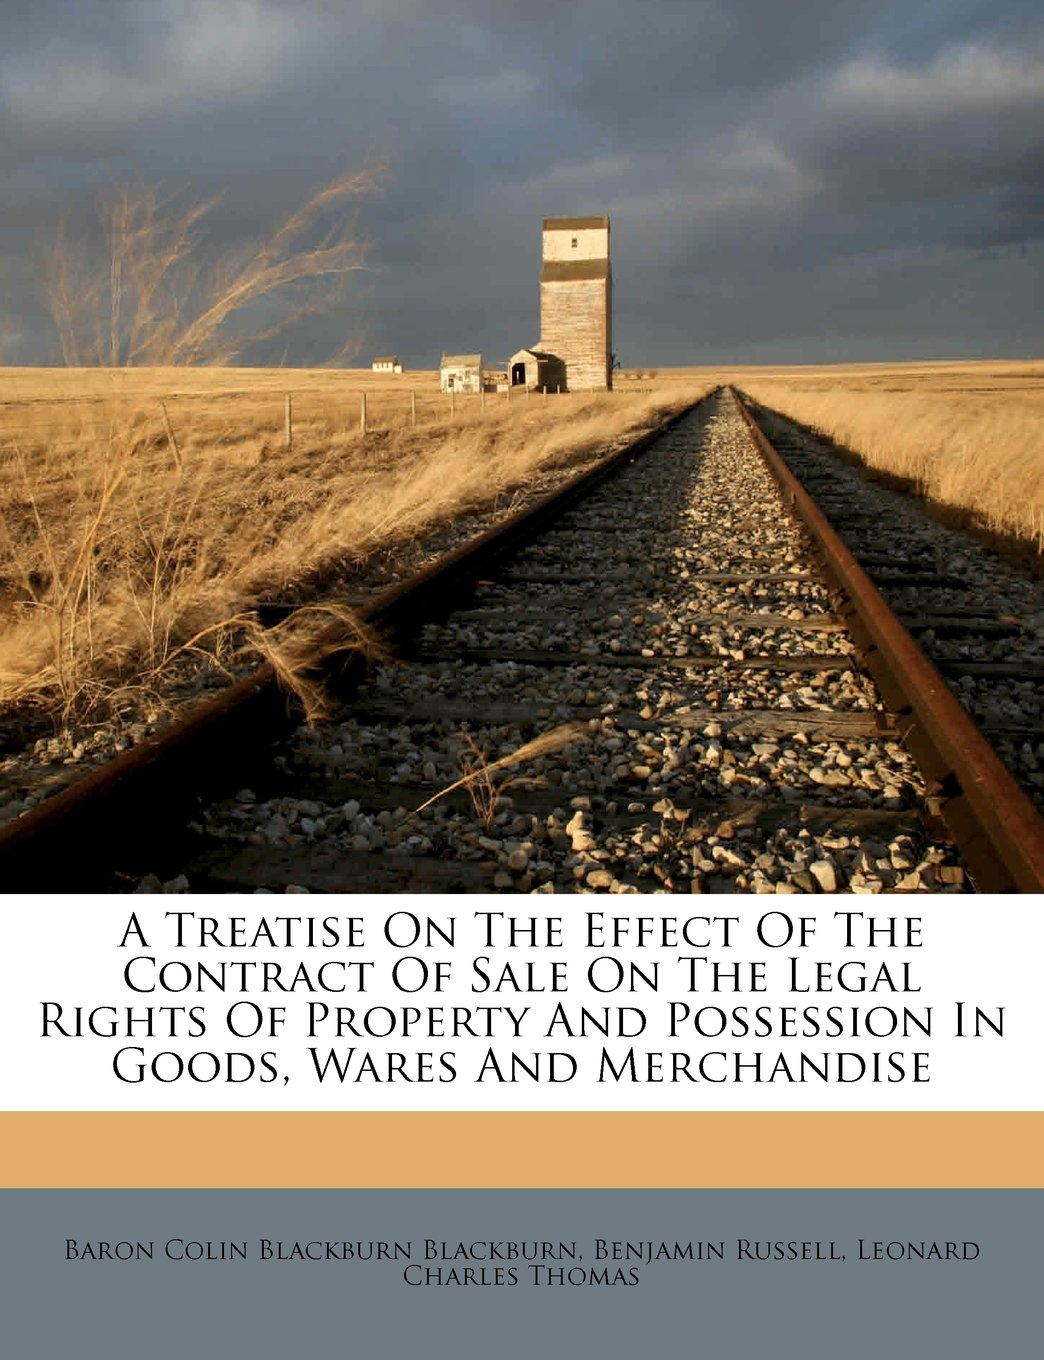 A Treatise On The Effect Of The Contract Of Sale On The Legal Rights Of Property And Possession In Goods, Wares And Merchandise PDF